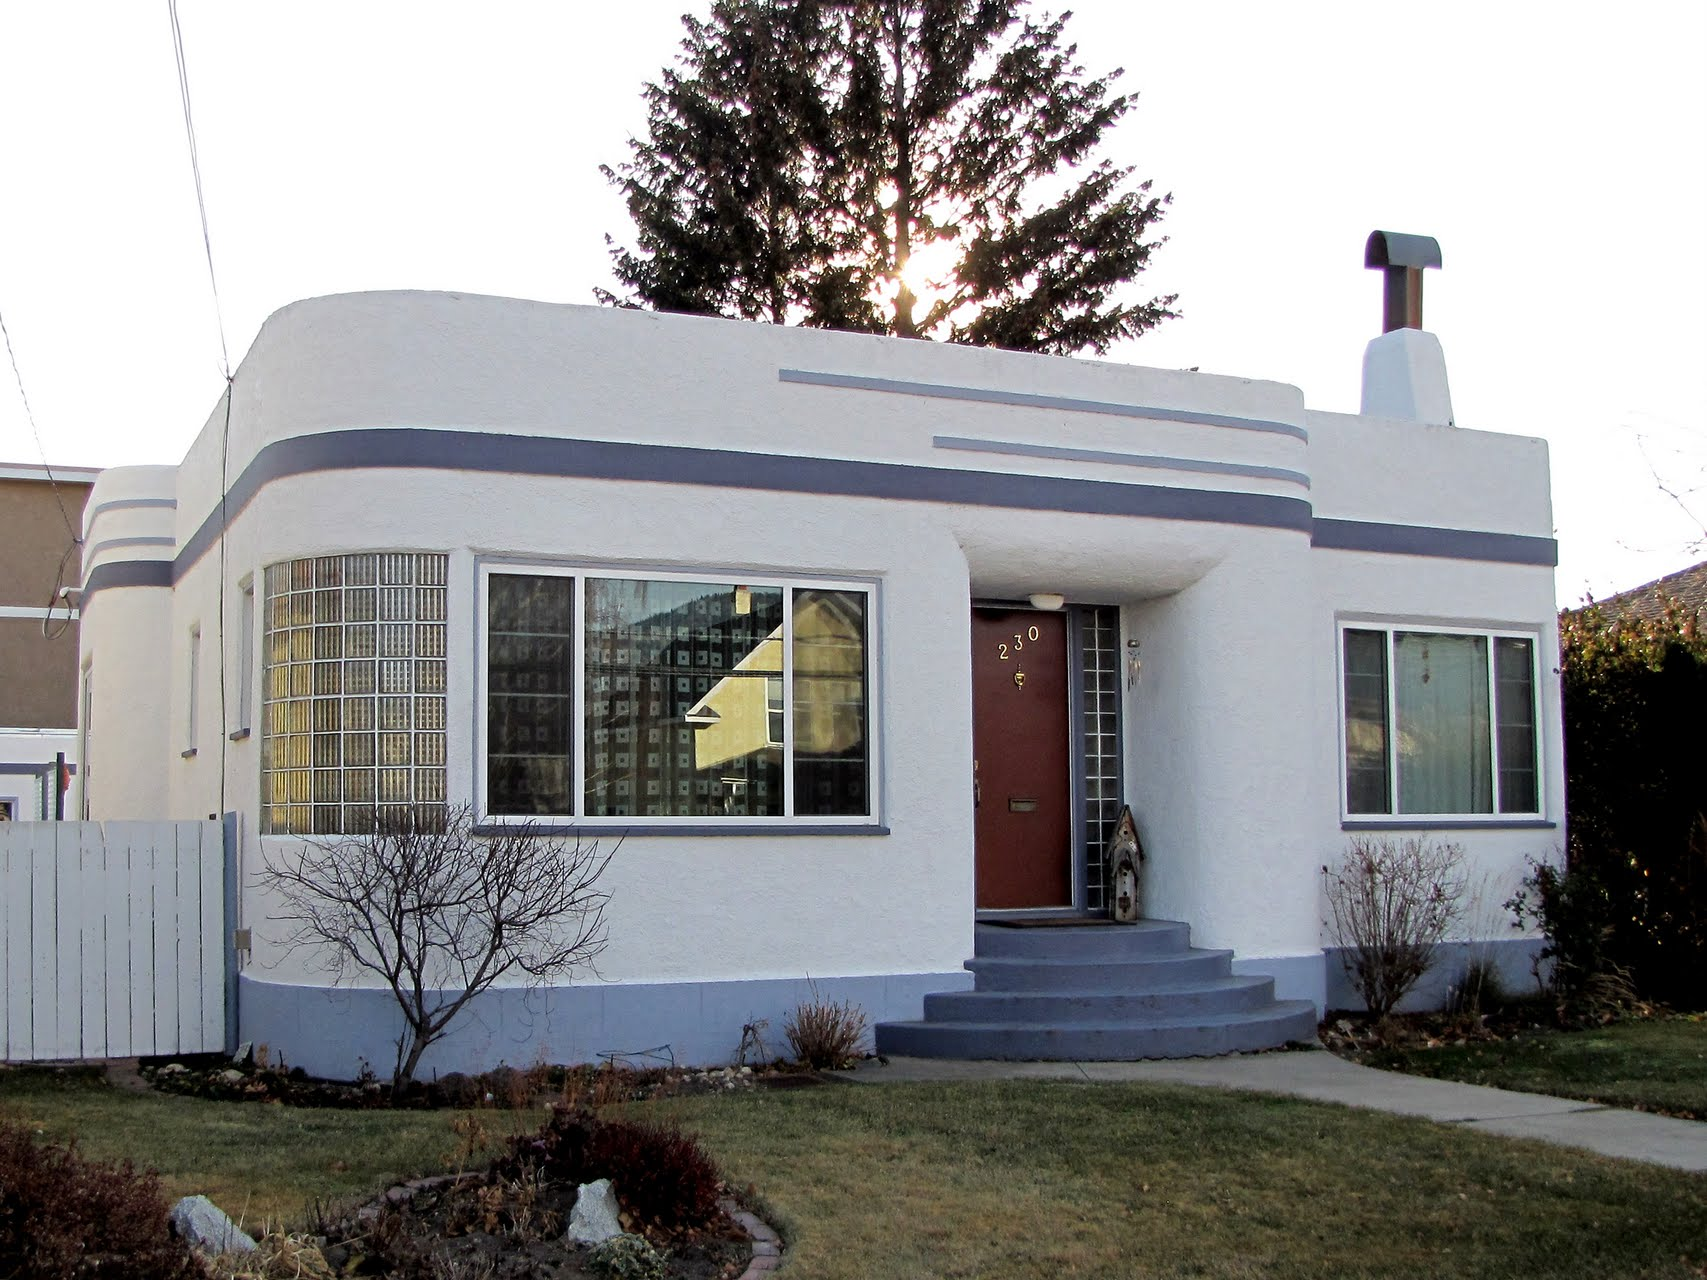 art moderne homes in bc penticton flat top homes streamline era. Black Bedroom Furniture Sets. Home Design Ideas